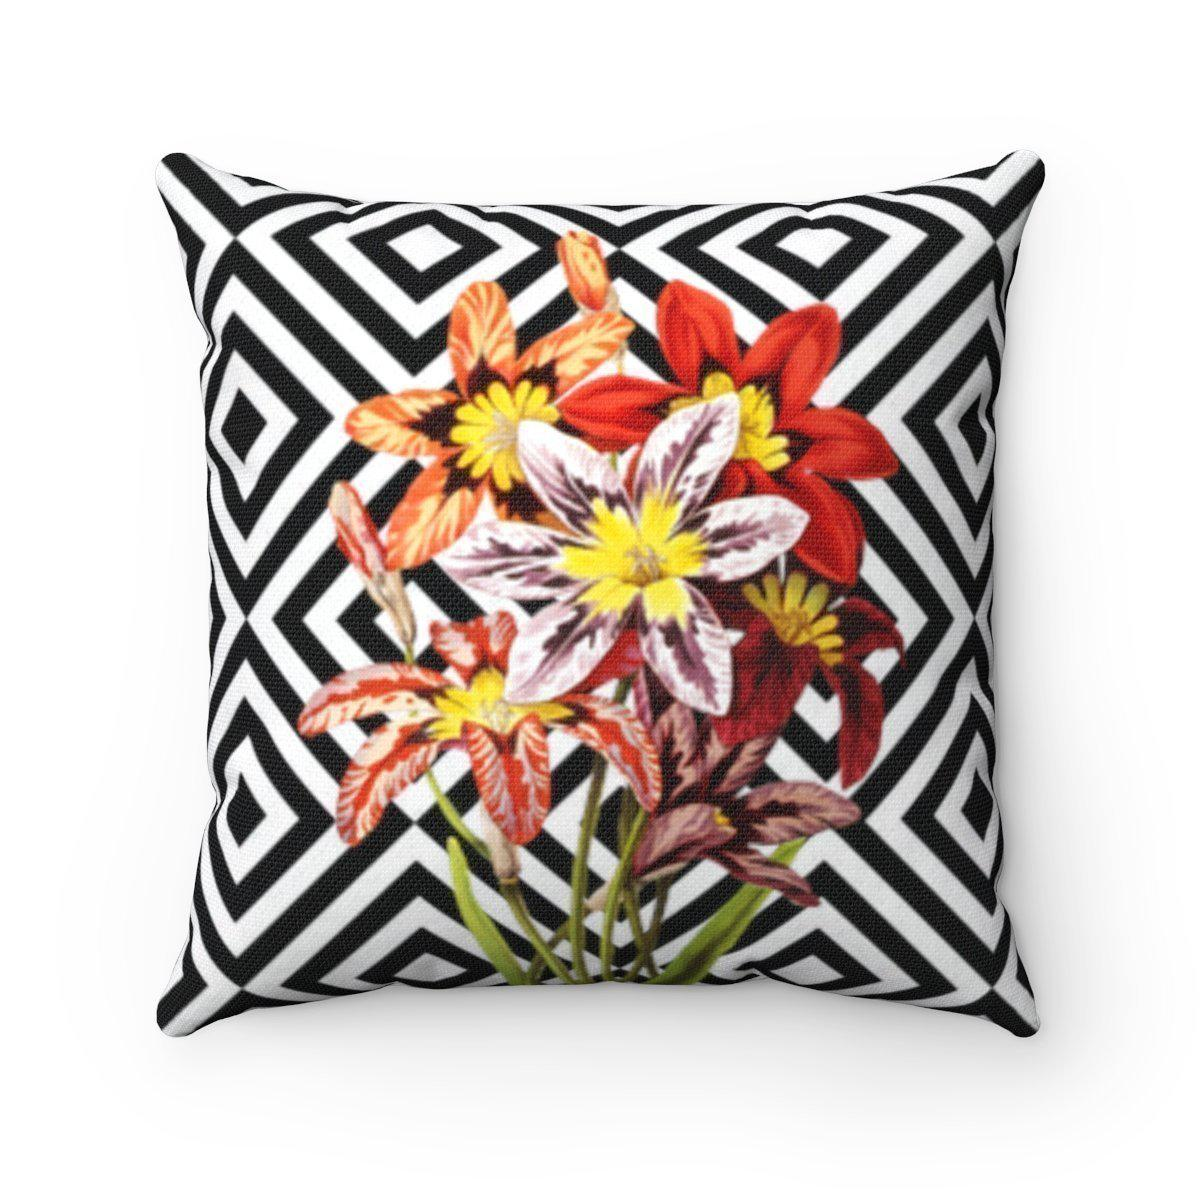 Luxury Floral abstract decorative cushion cover-Home Decor - Decorative Accents - Pillows & Throws - Decorative Pillows-Maison d'Elite-16x16-Très Elite